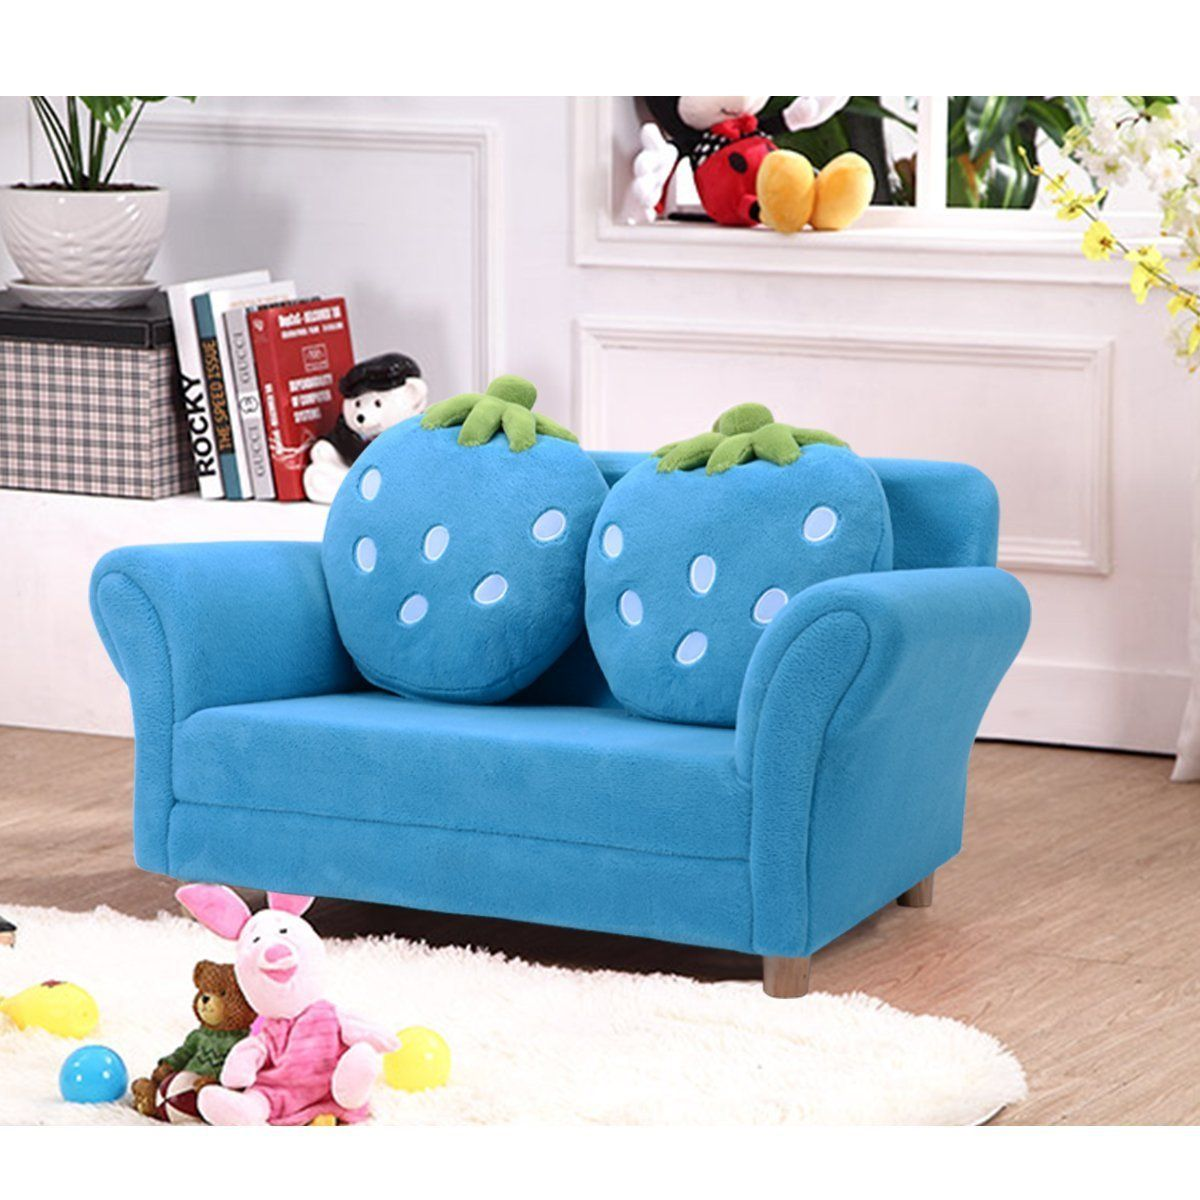 Costzon Children Sofa Kids Couch Armrest Chair Upholstered Living Room Furniture Lounge Bed With Two Strawberry Upholstered Kids Chair Kids Armchair Kids Sofa